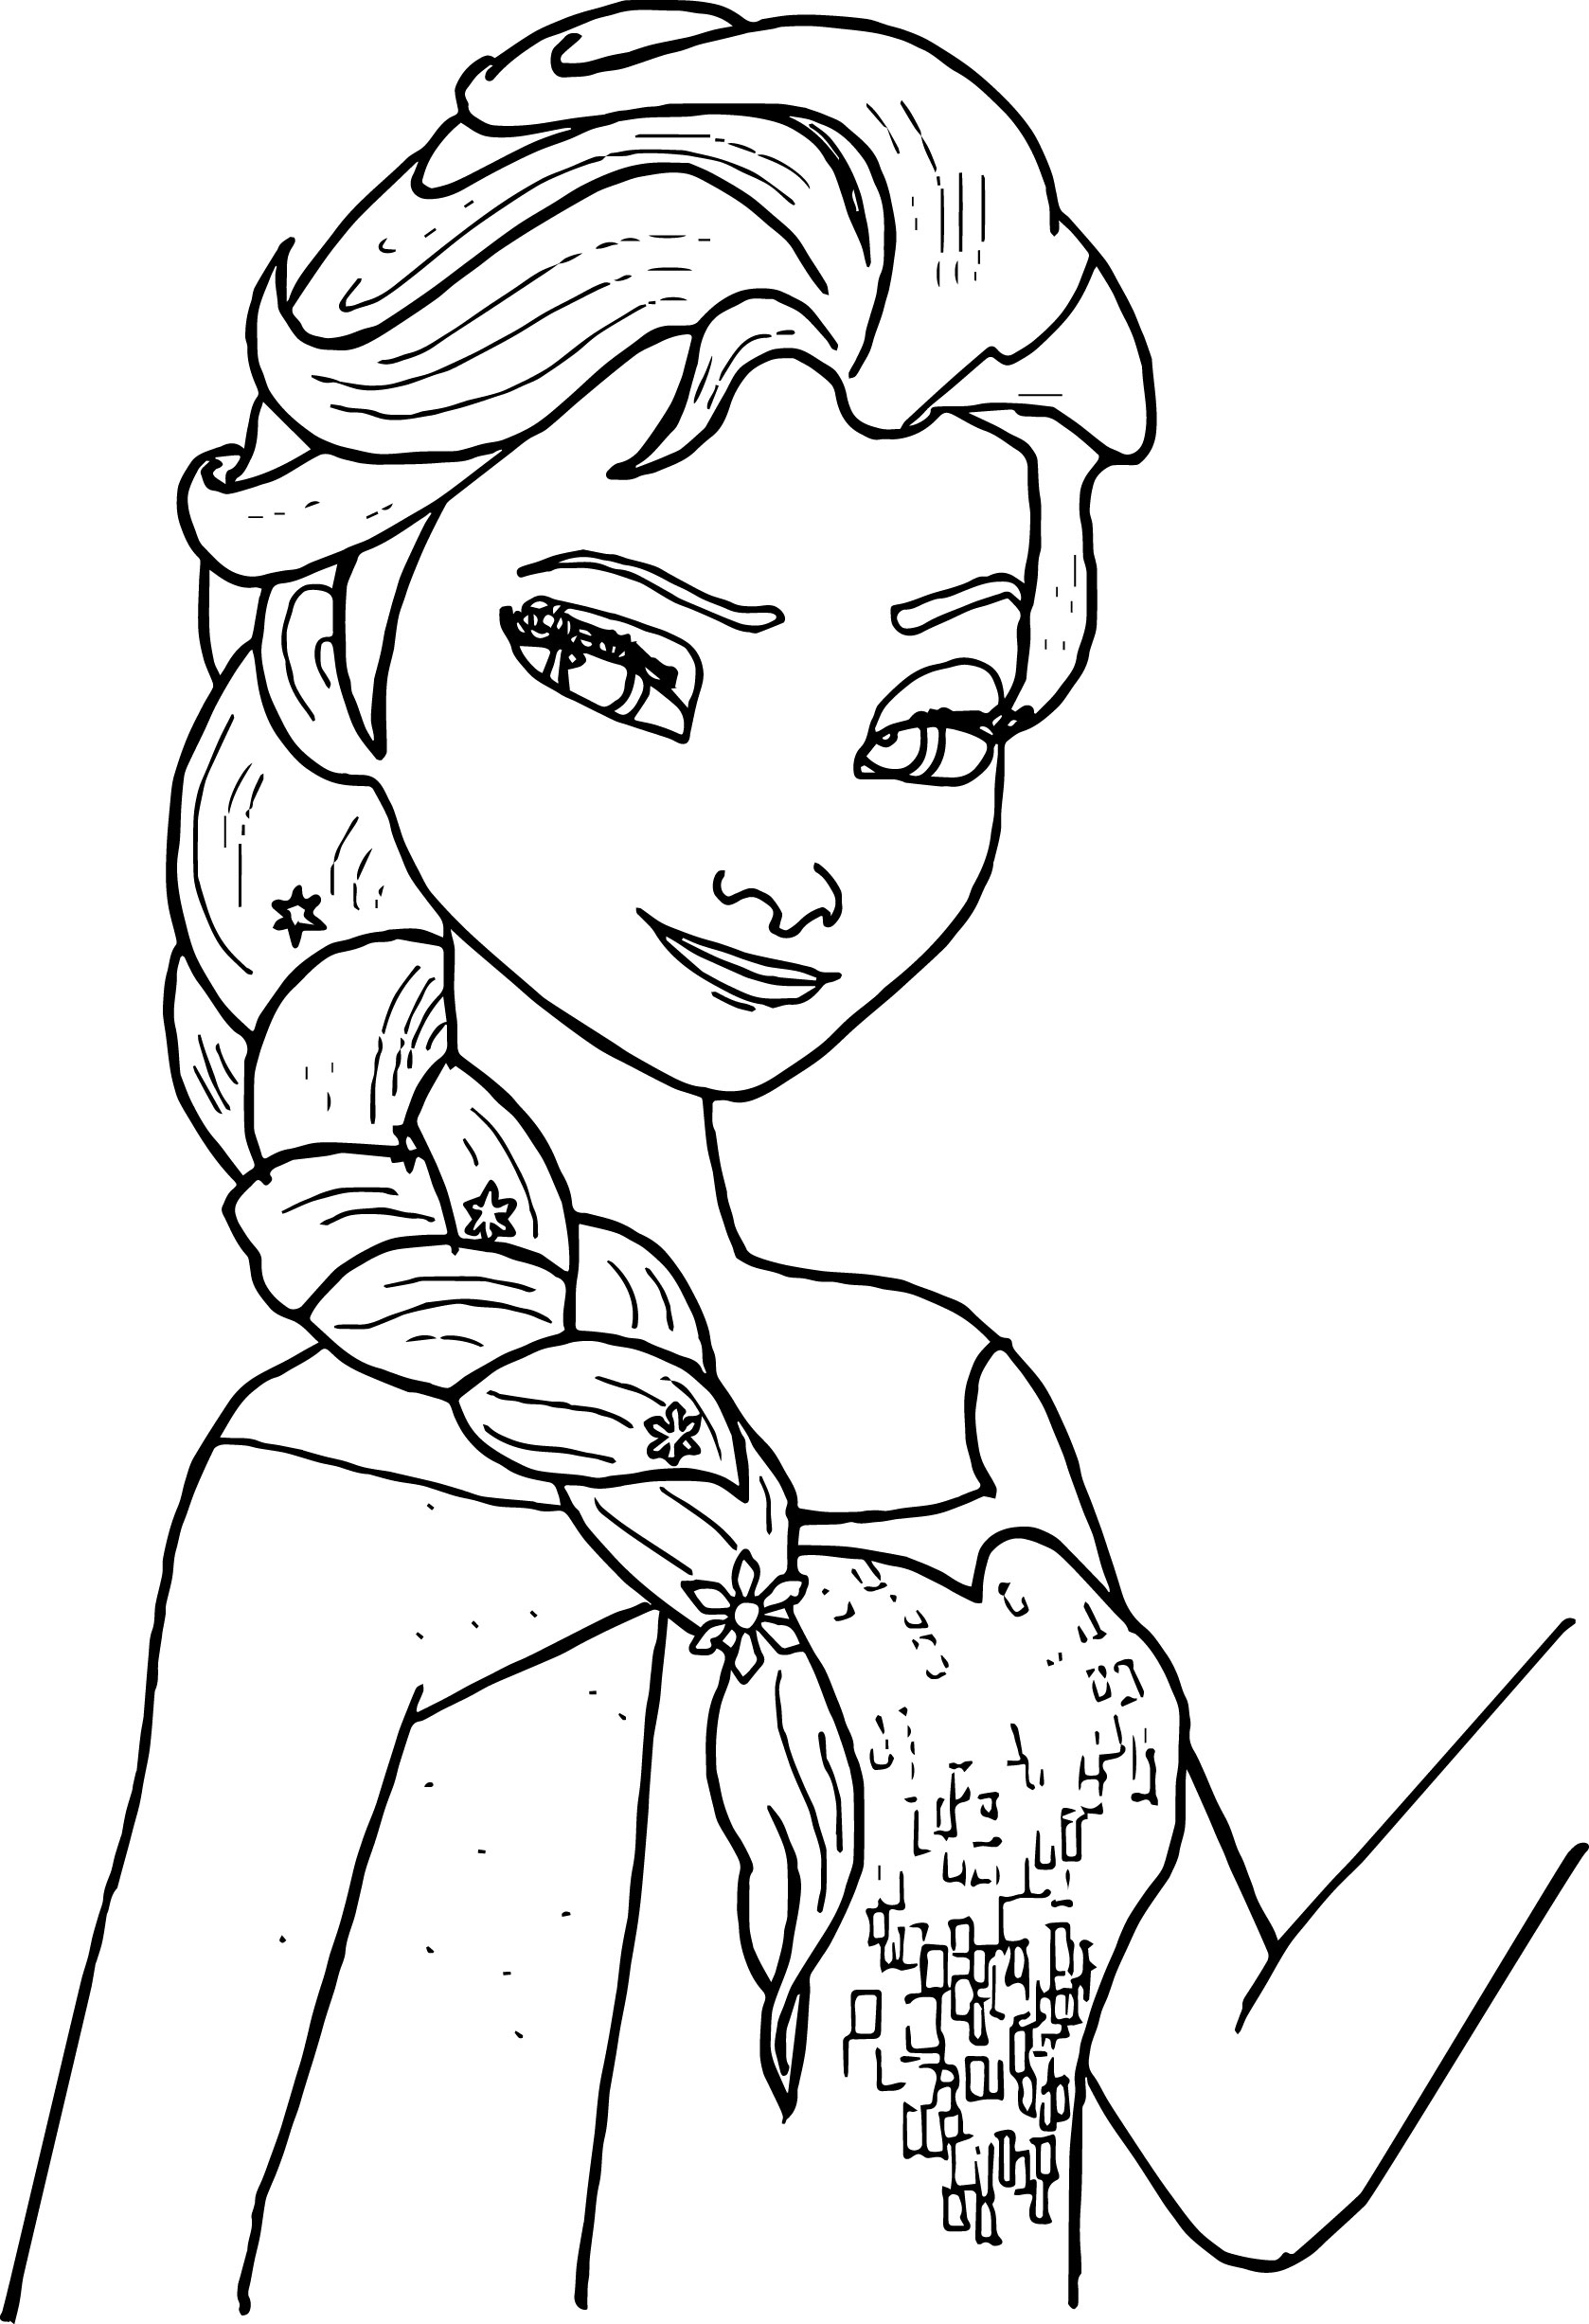 elsa coloring page printables - Elsa Coloring Pages Printable